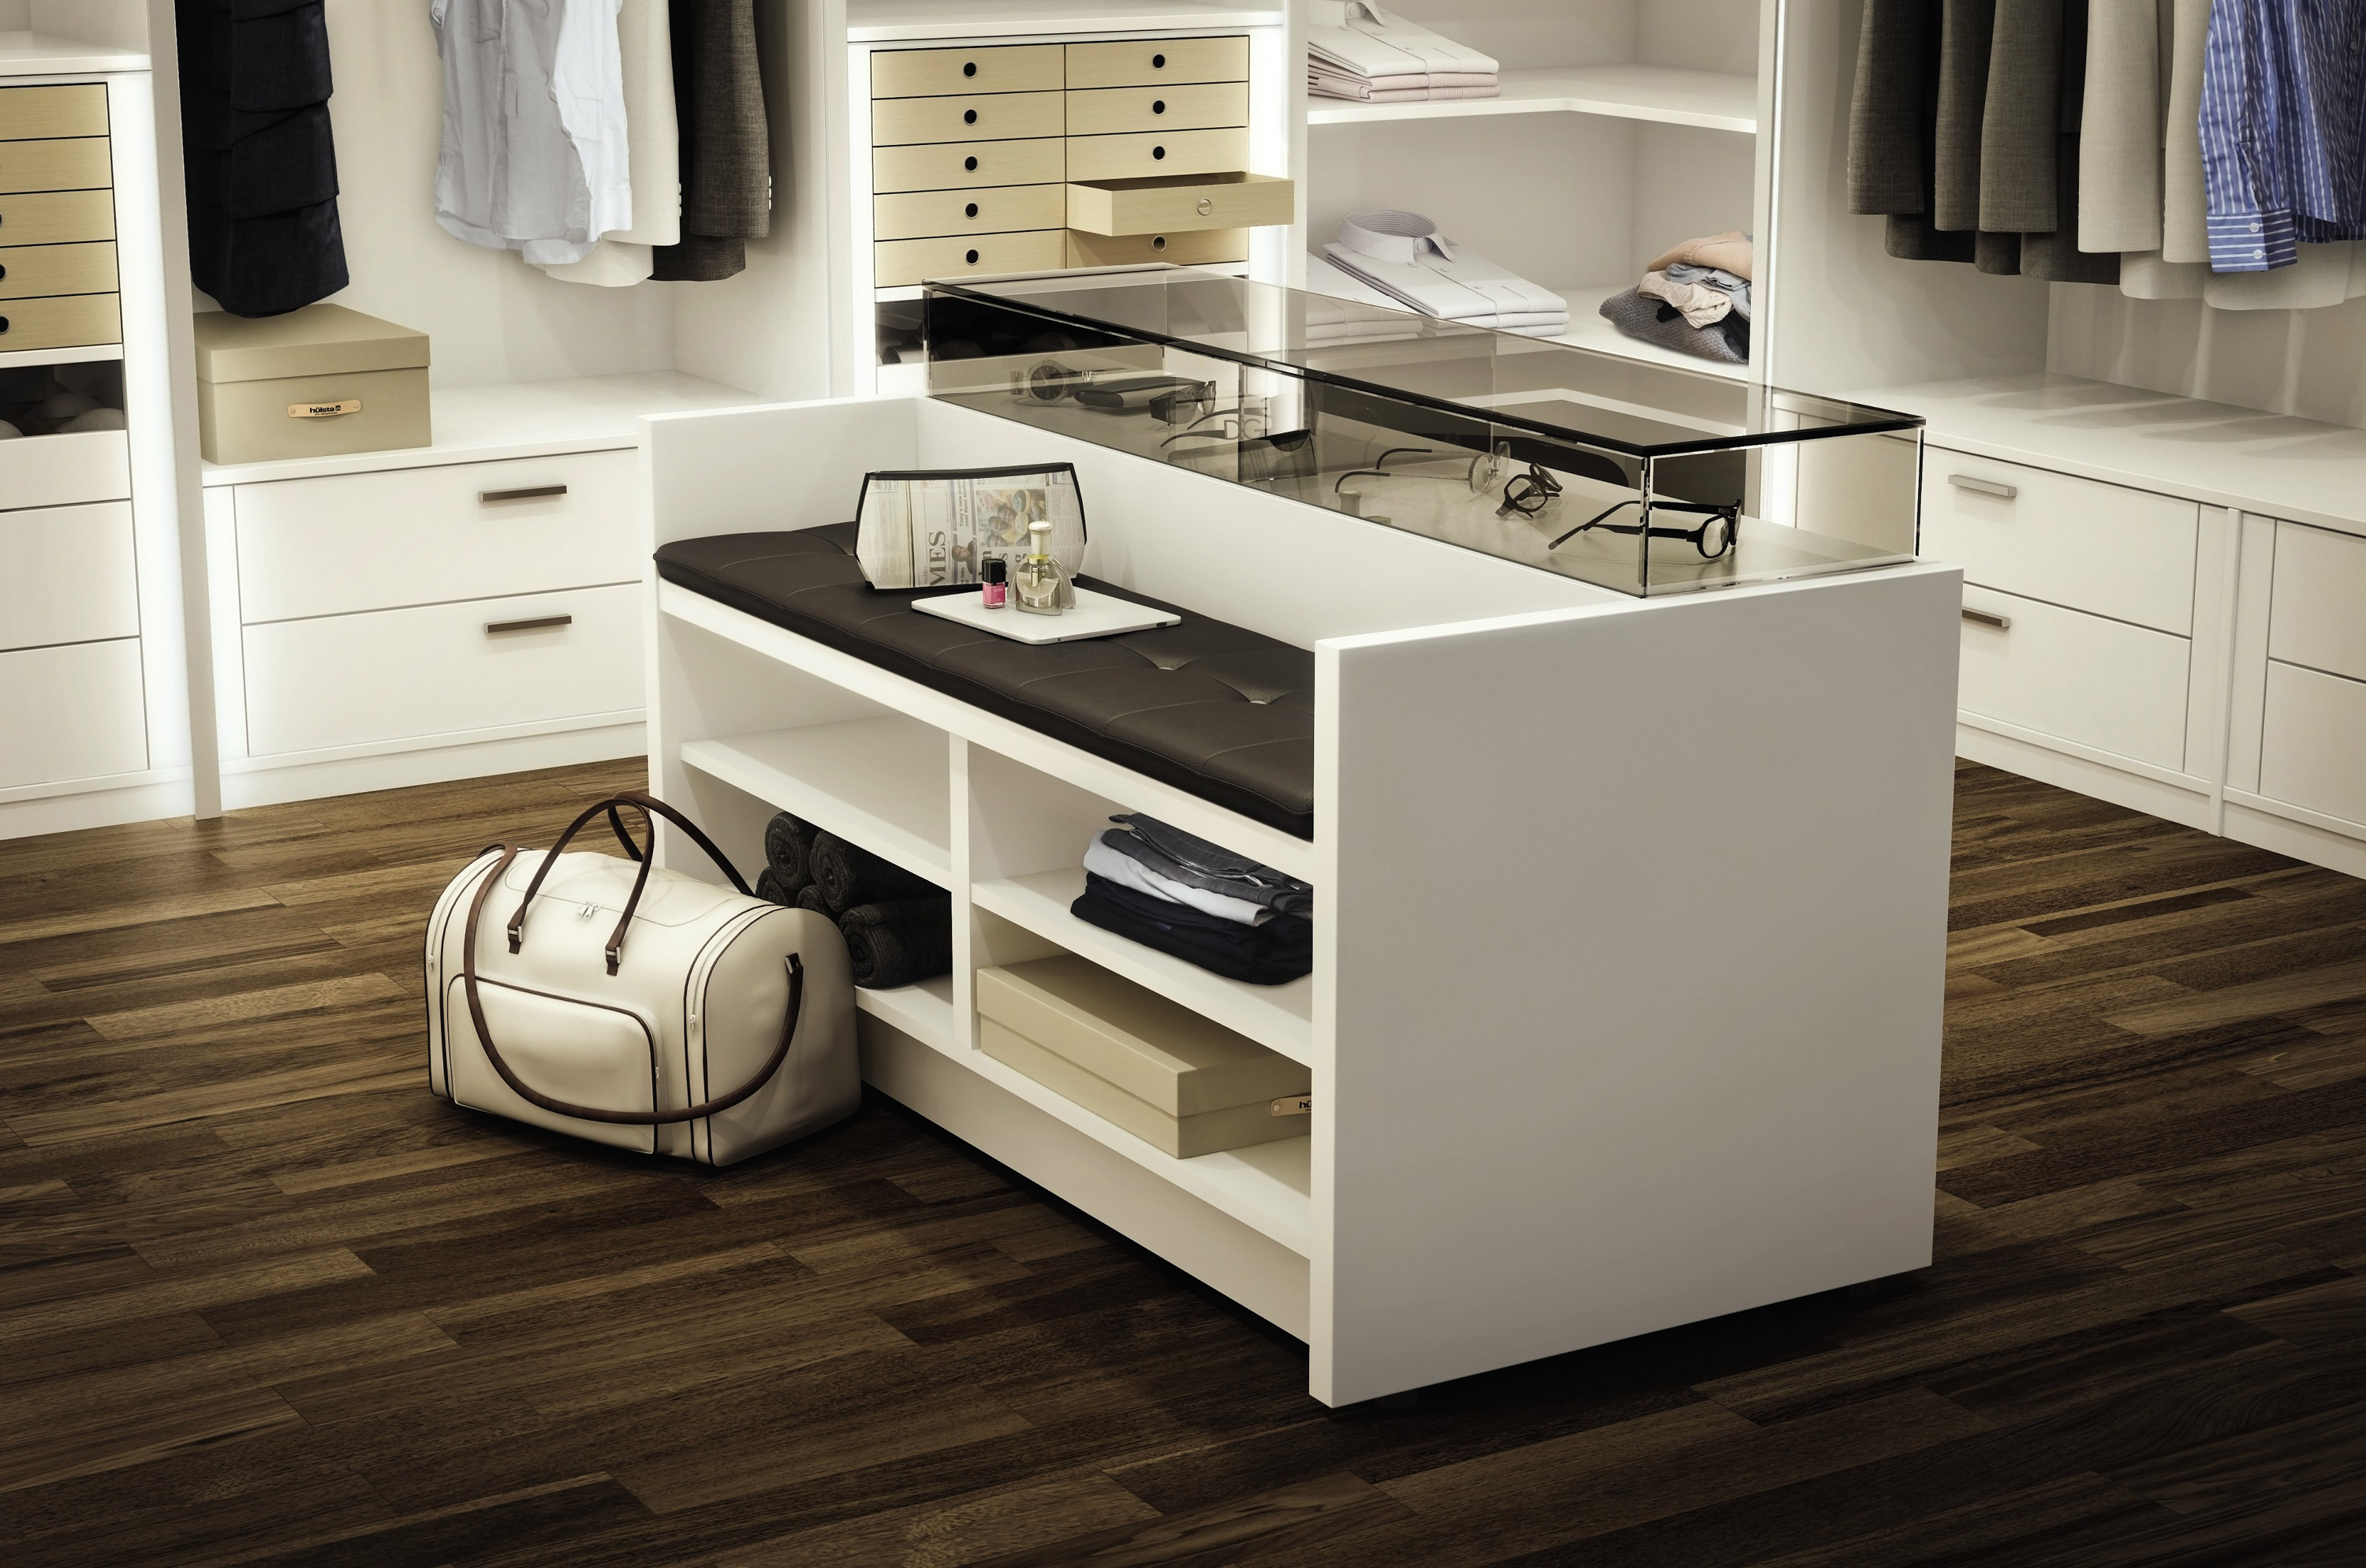 multi forma ii begehbarer kleiderschrank by h lsta werke h ls. Black Bedroom Furniture Sets. Home Design Ideas